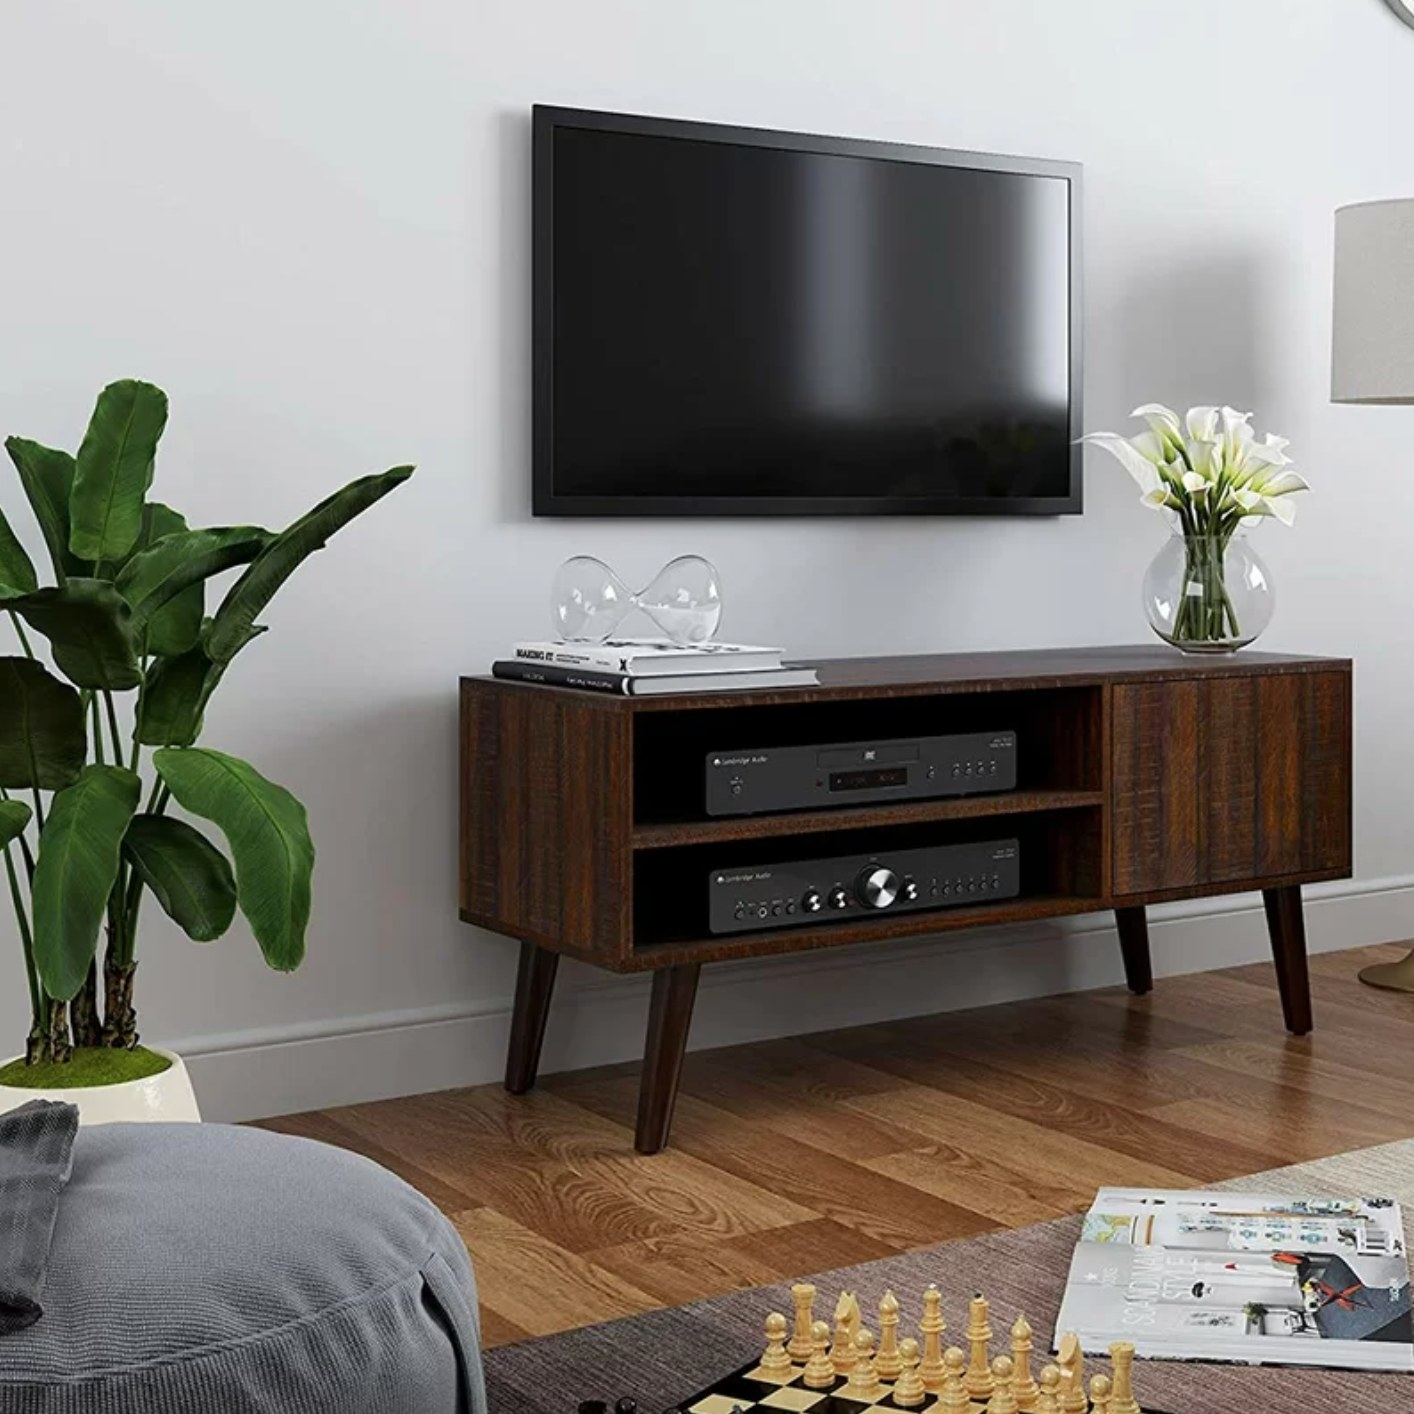 The TV stand in walnut